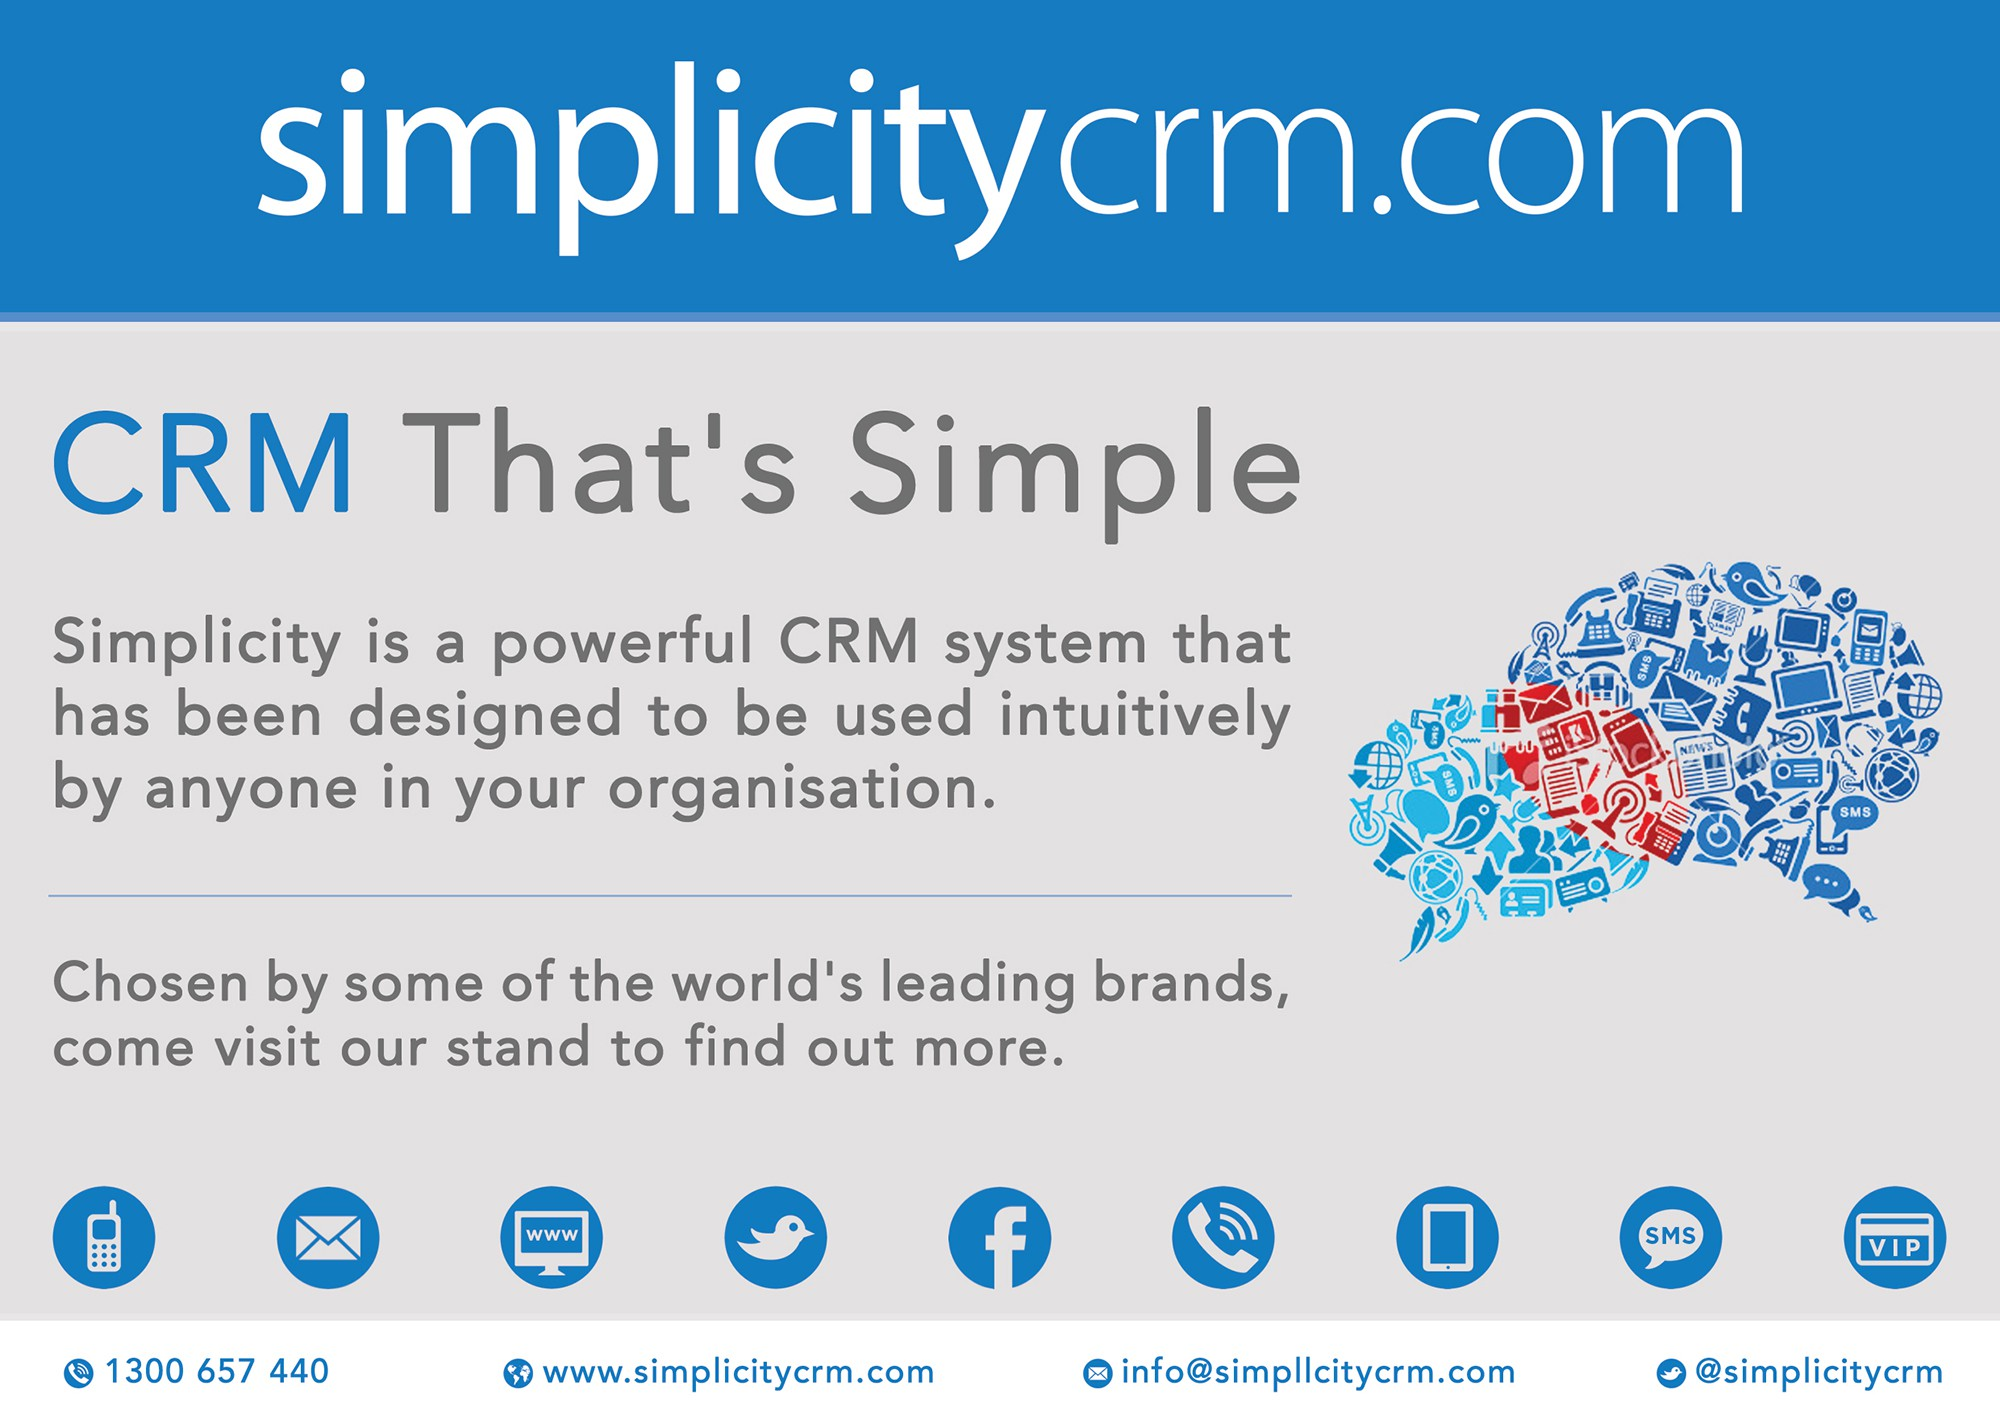 business or advertising for Simplicity CRM